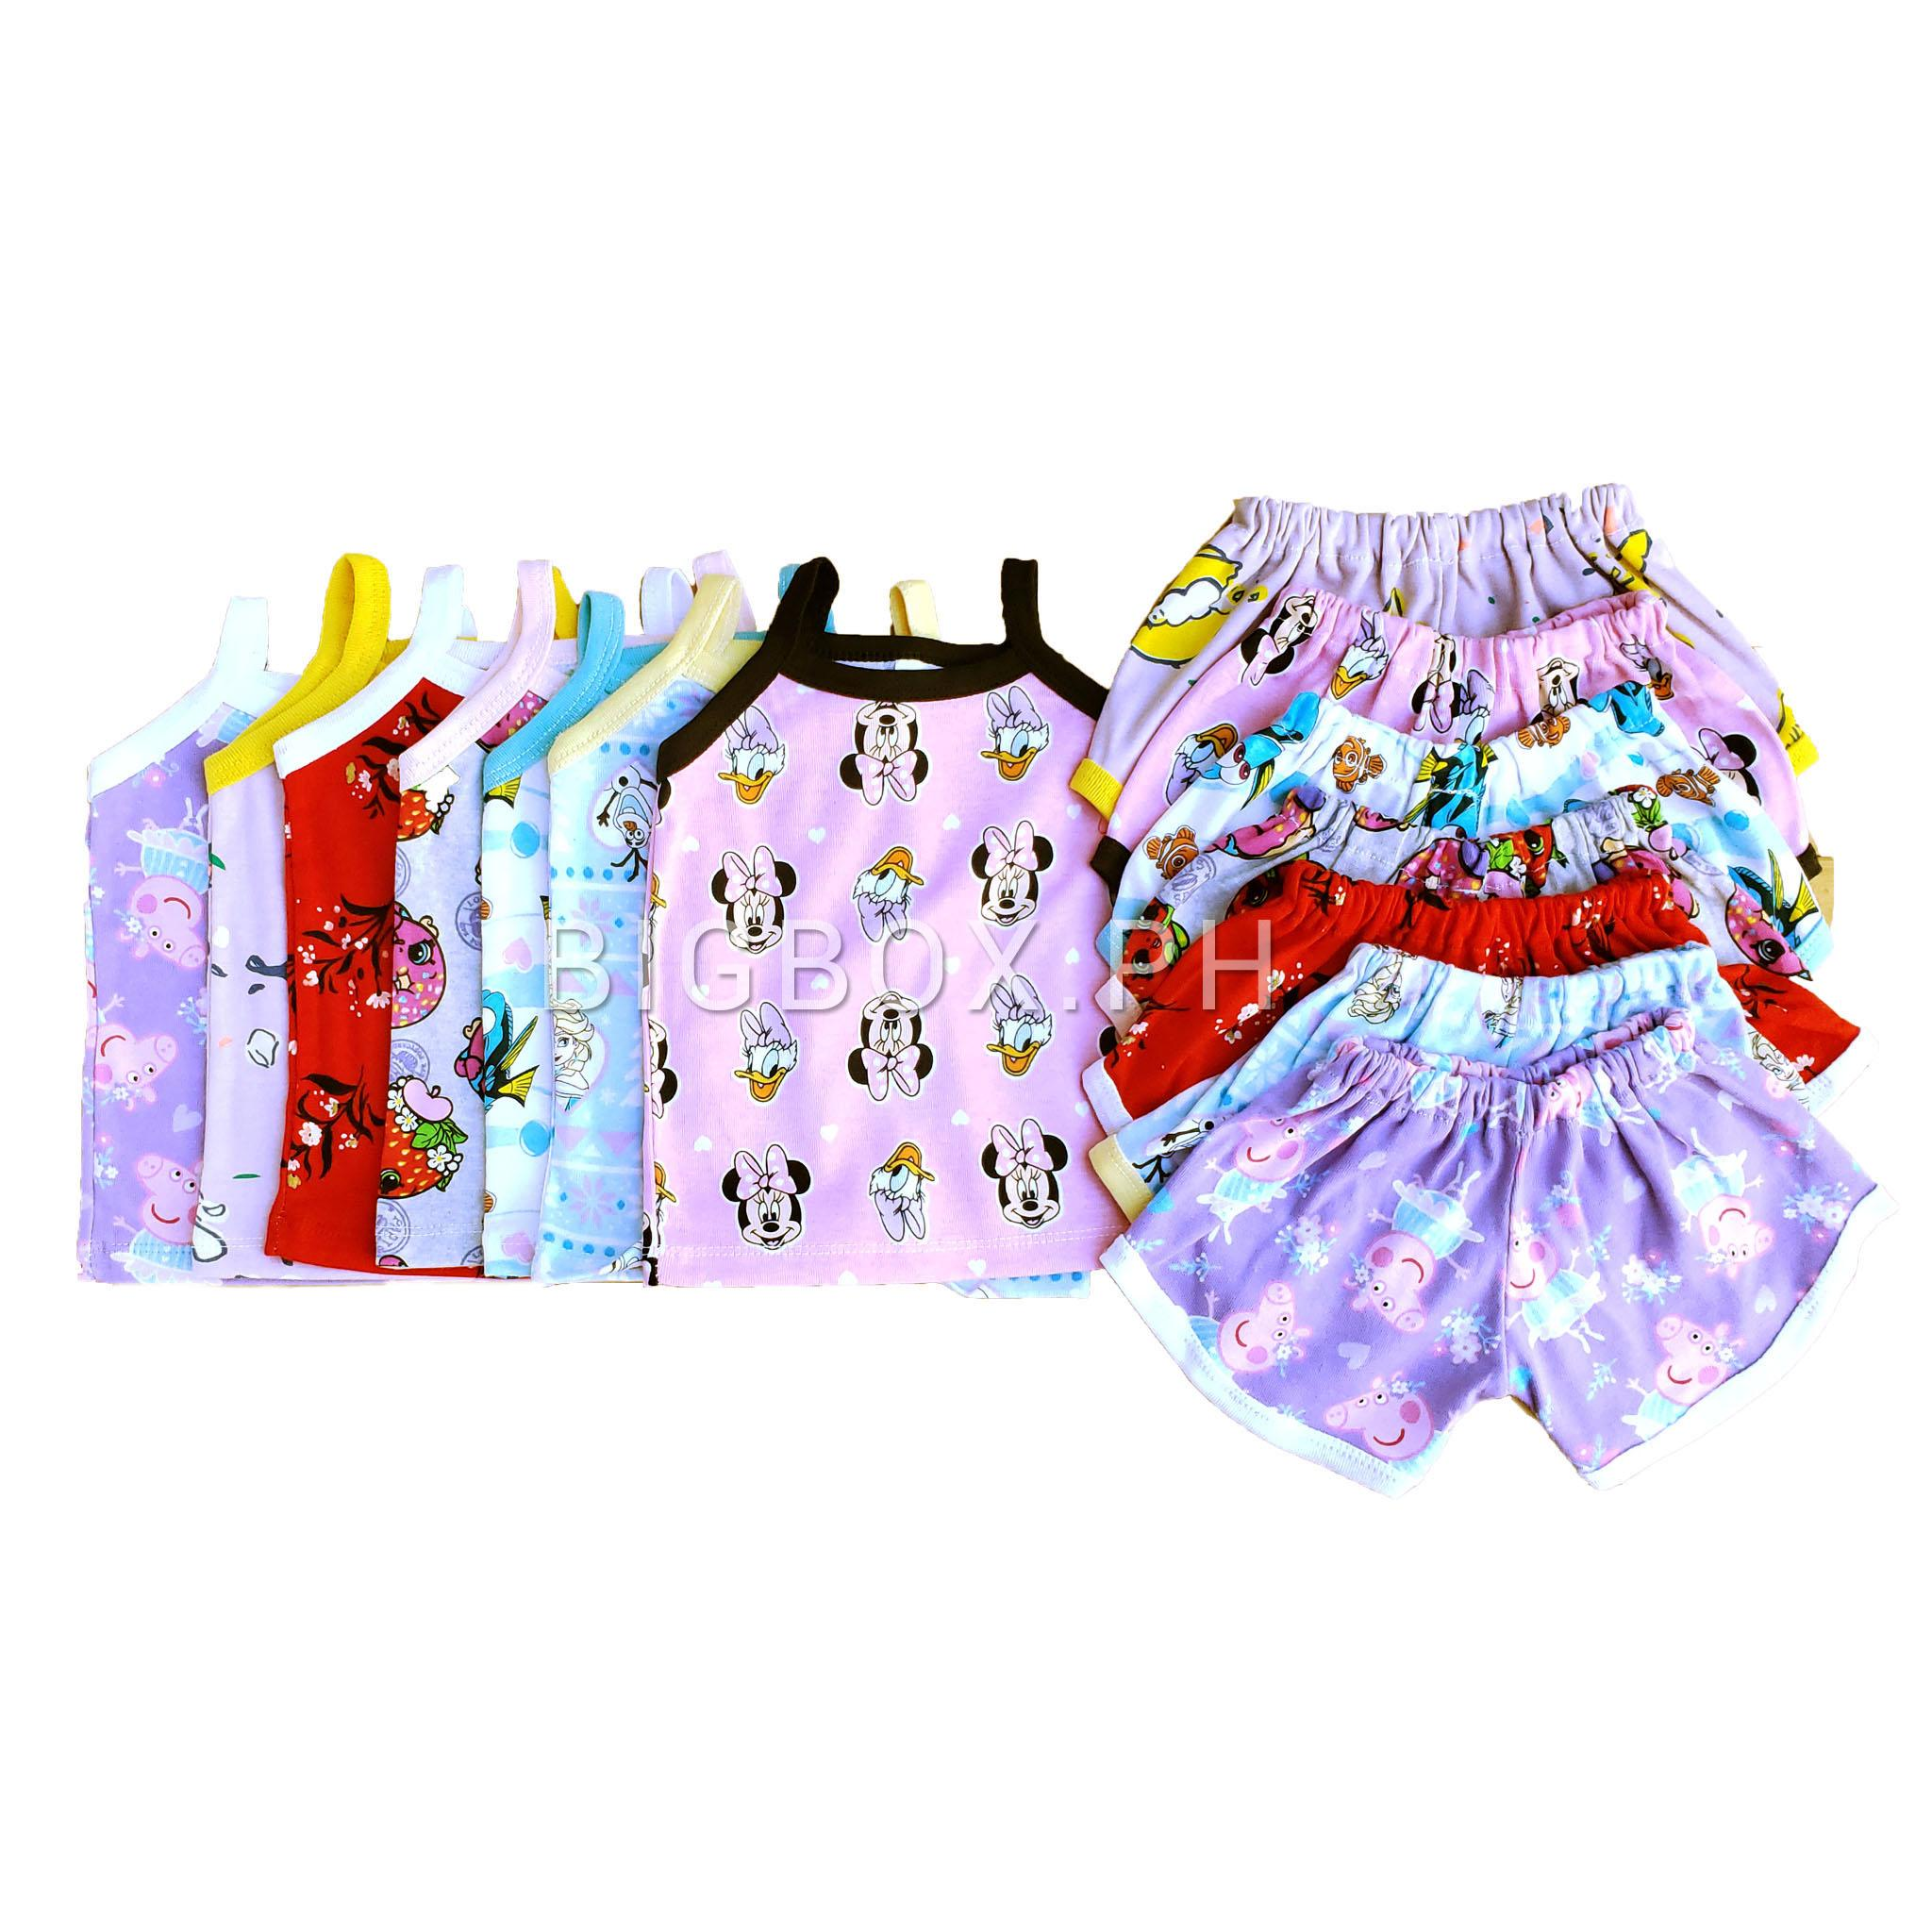 8ffa0ab37333 Girls Clothing Sets for sale - Clothing Sets for Baby Girls Online ...